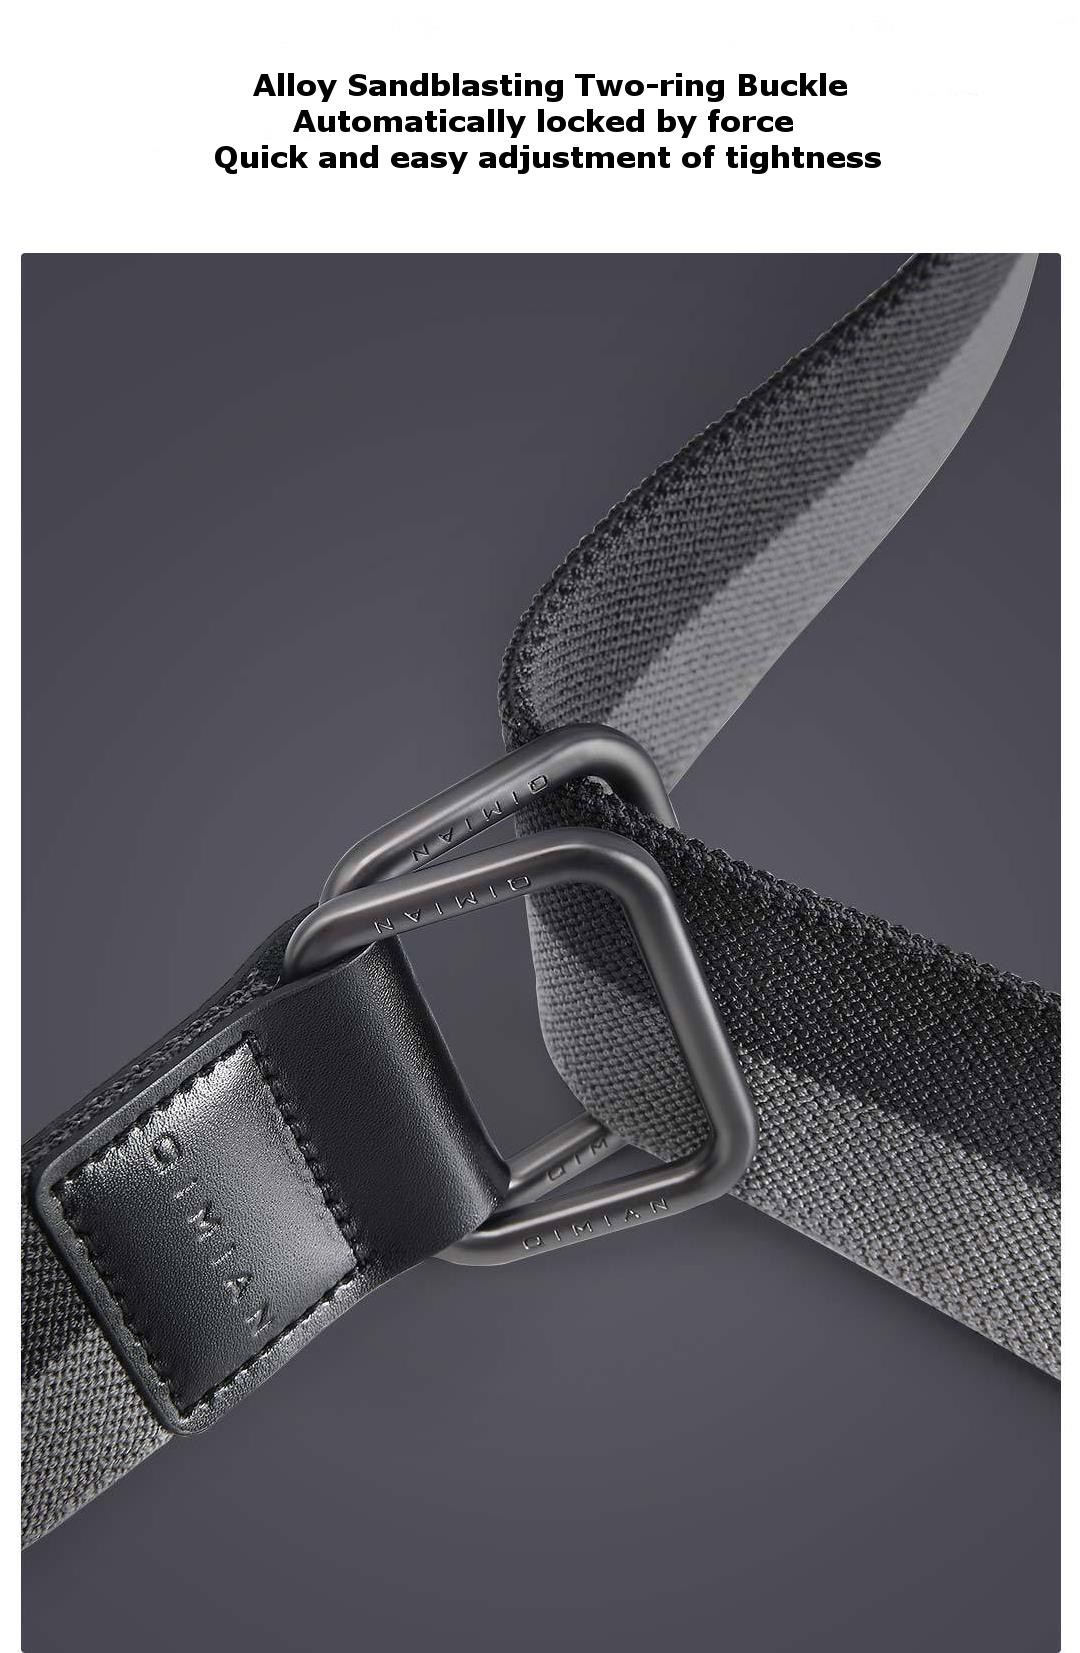 QIMIAN 110-130cm 3.8cm Width Quick Release Buckle Elastic Fabric Sports Leisure Tactical Belt From Xiaomi Youpin